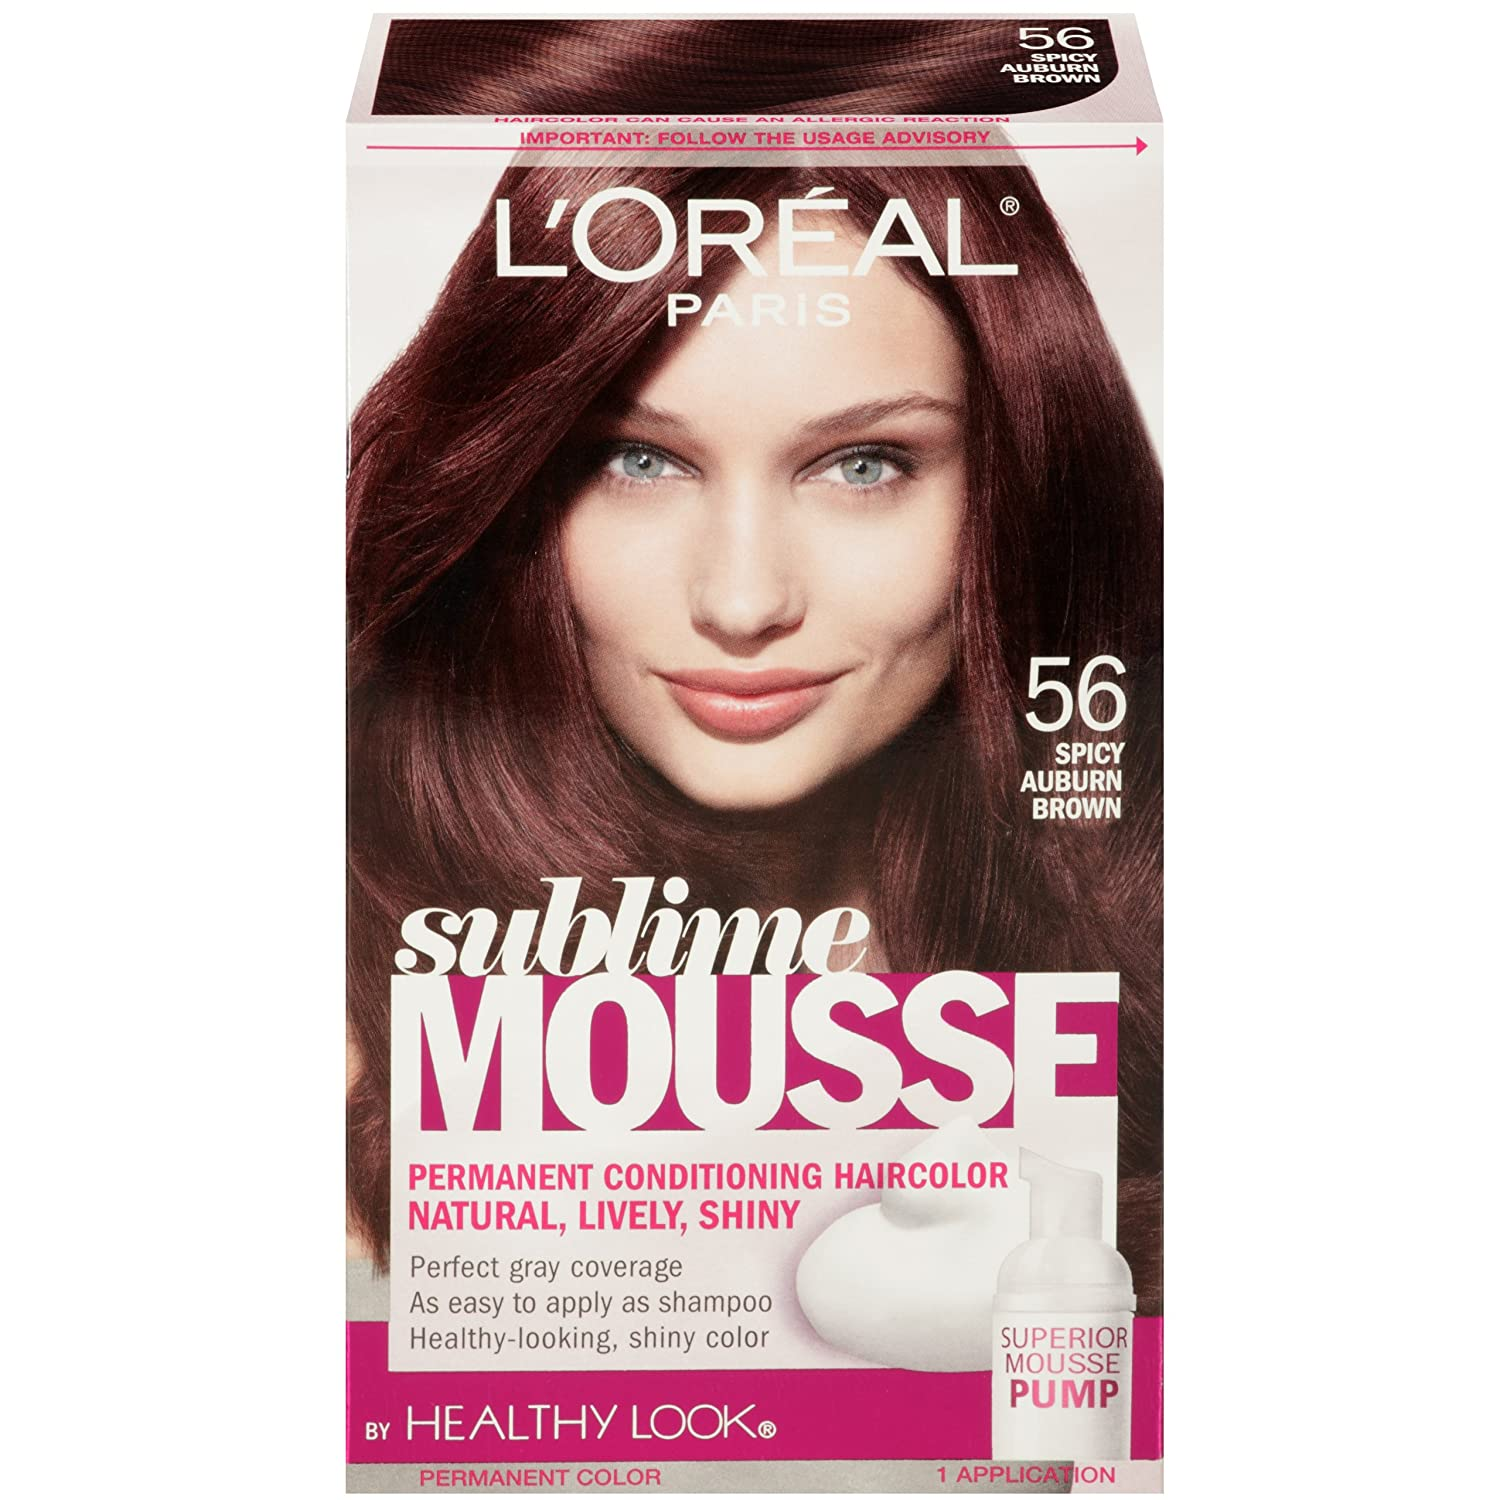 L'Oreal's Sublime Mousse Permanent Hair Color